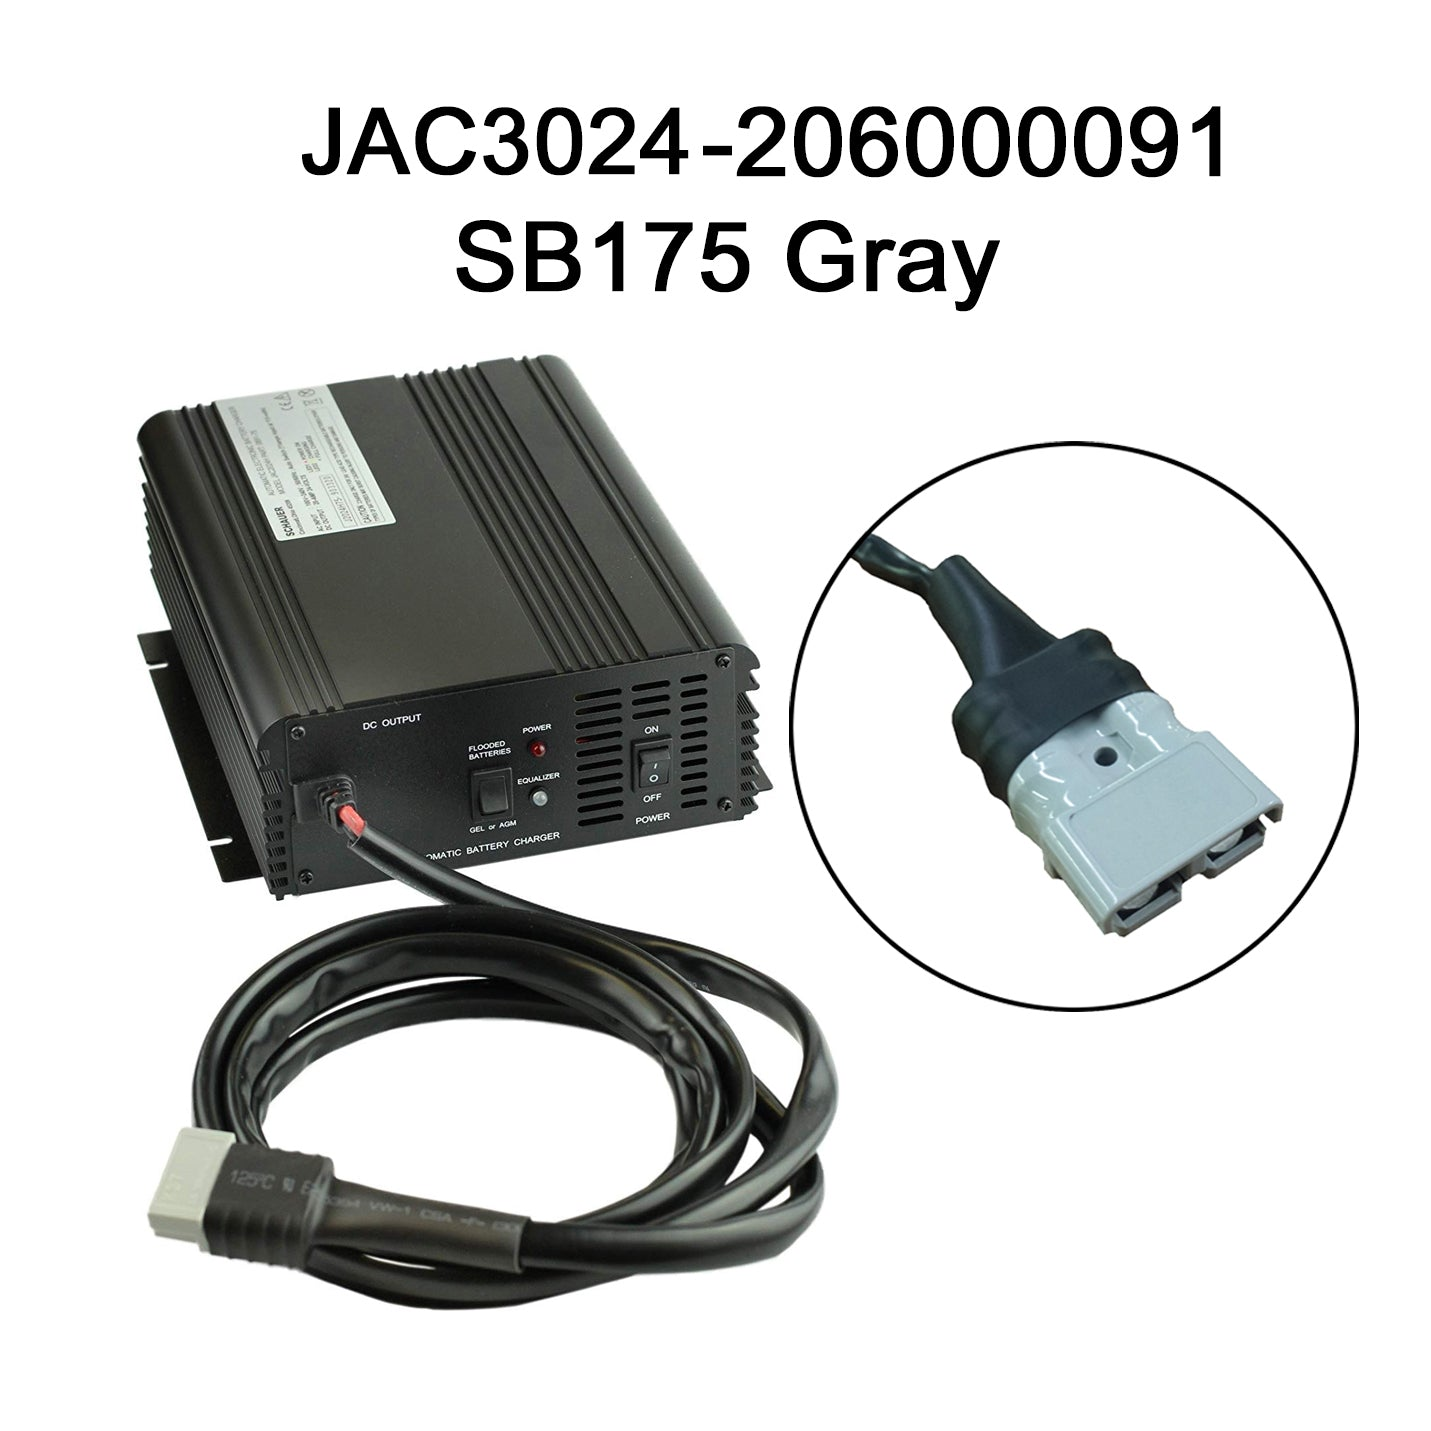 Schauer 24V 30A Fully Automatic Electronic Charger / Float Standby - 115/230VAC - SB50 w/ choice of DC Industrial Connector